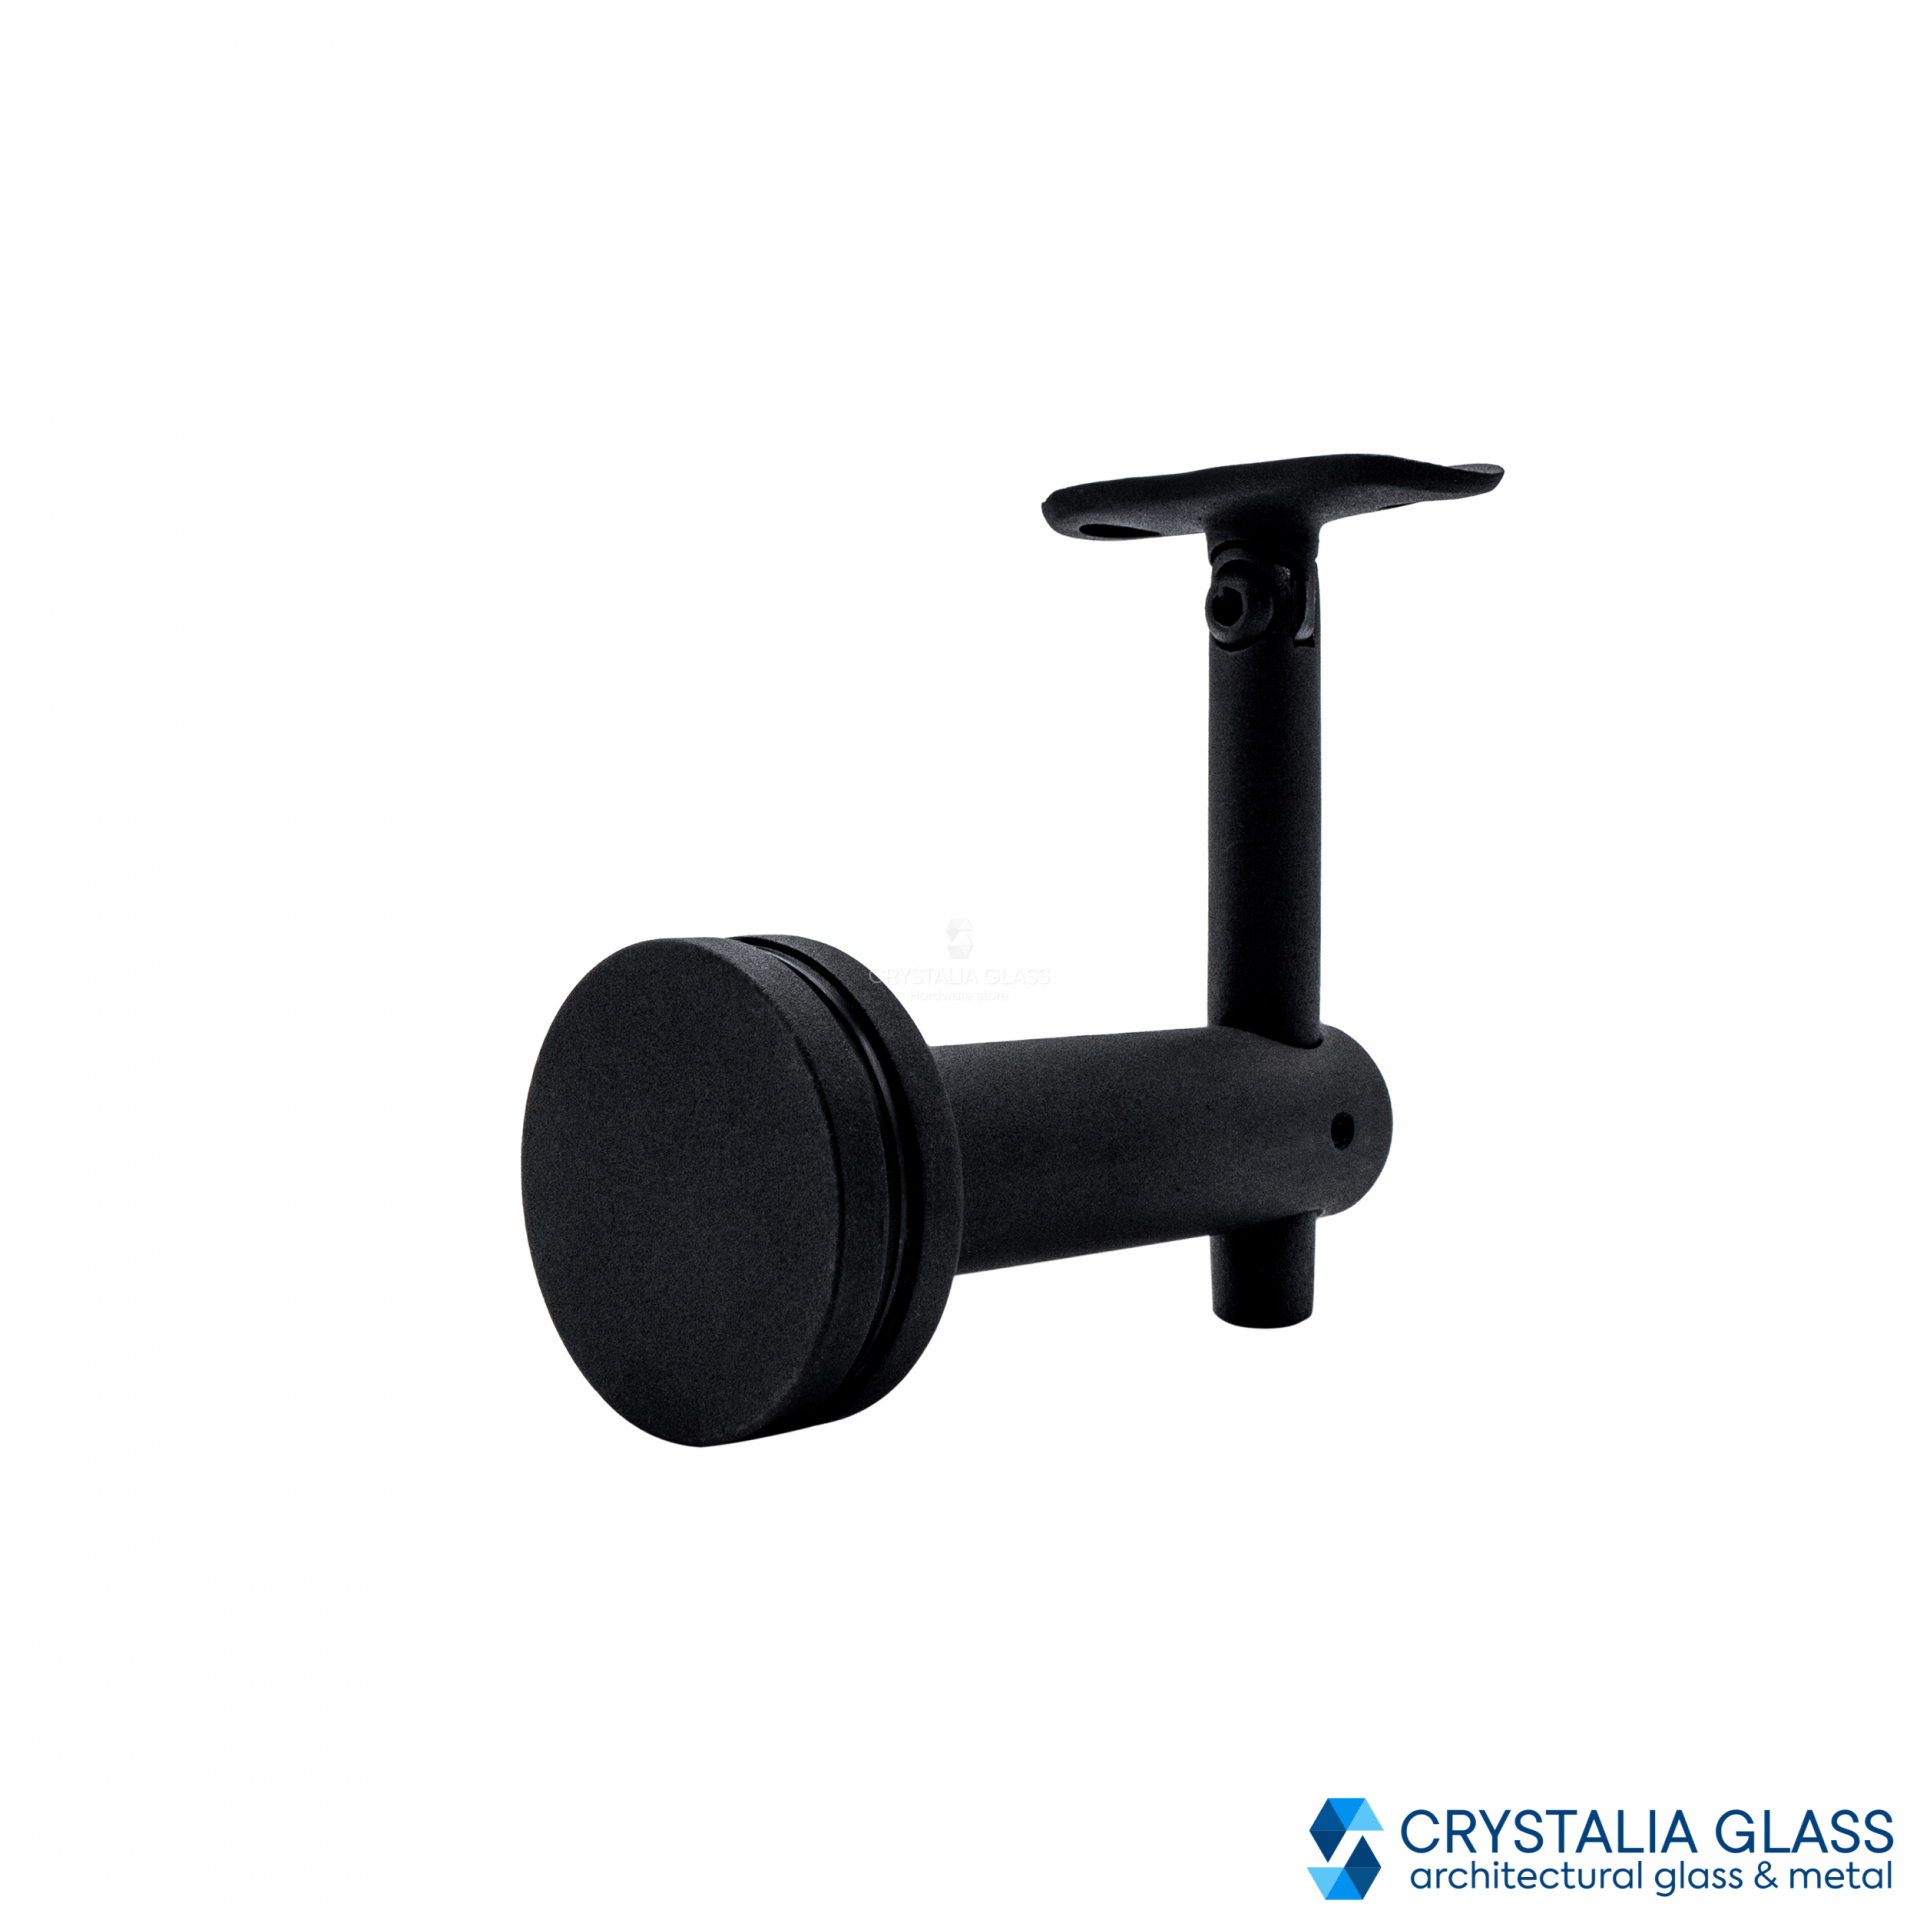 CG Black Matte Mounted Hand Rail Bracket